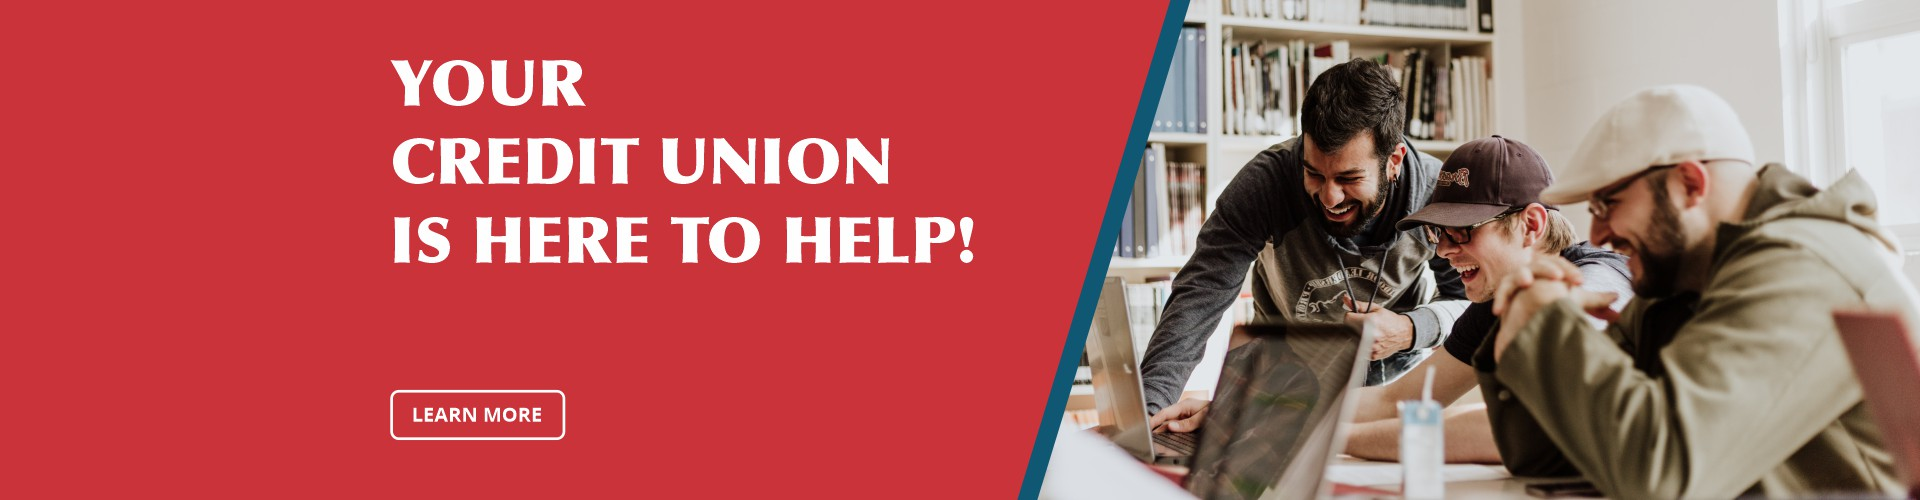 YOUR Credit Union is Here to HELP!